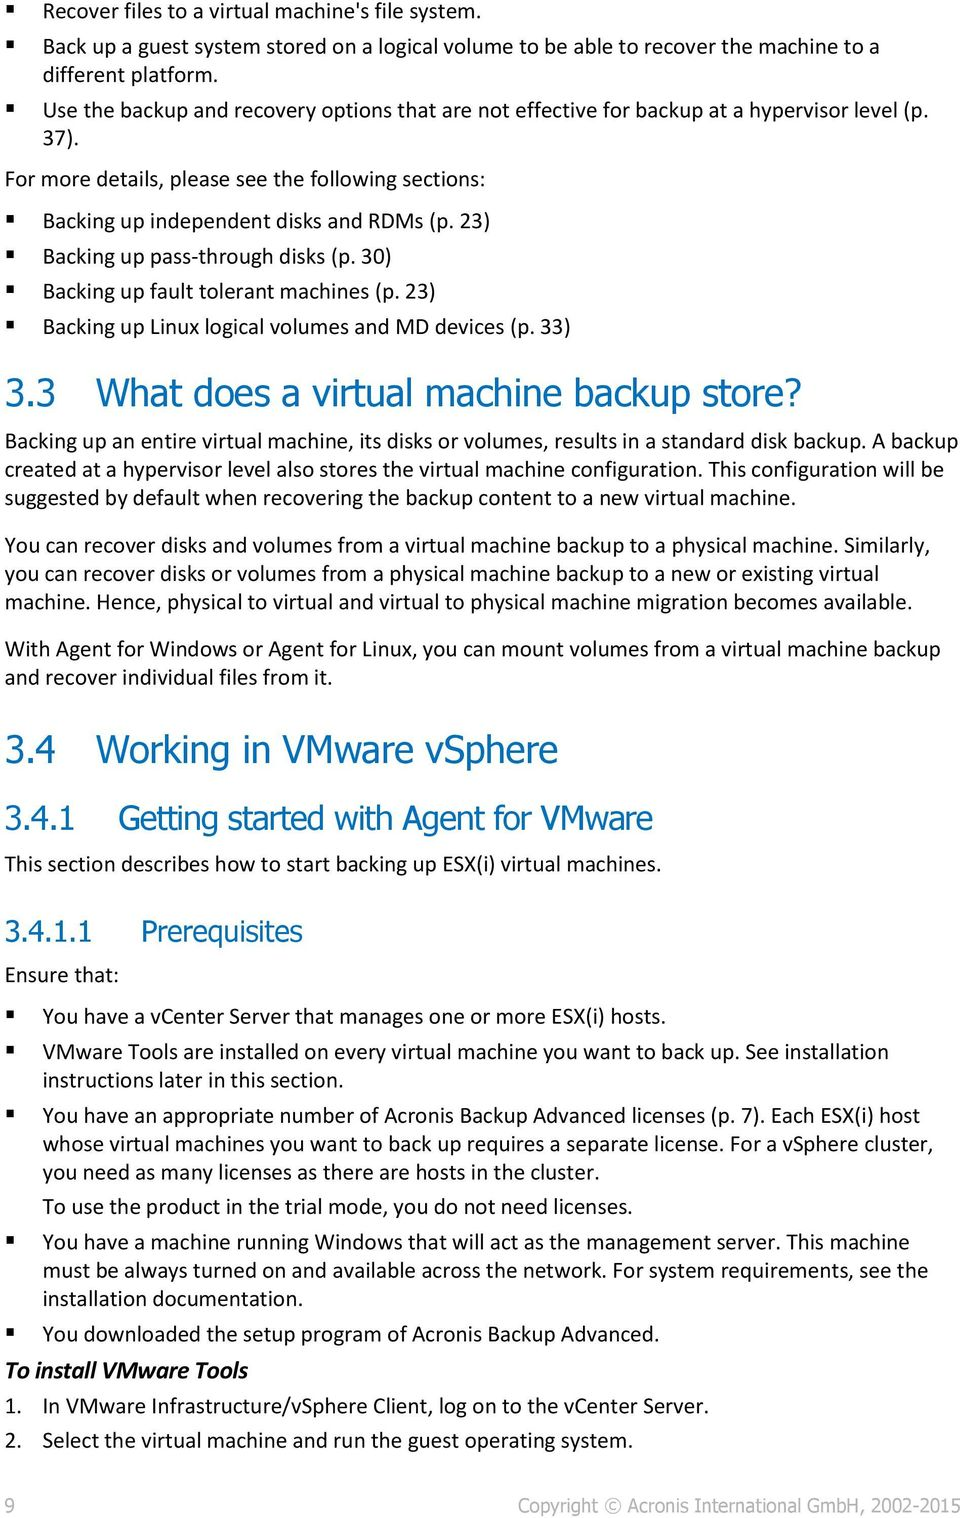 23) Backing up pass-through disks (p. 30) Backing up fault tolerant machines (p. 23) Backing up Linux logical volumes and MD devices (p. 33) 3.3 What does a virtual machine backup store?